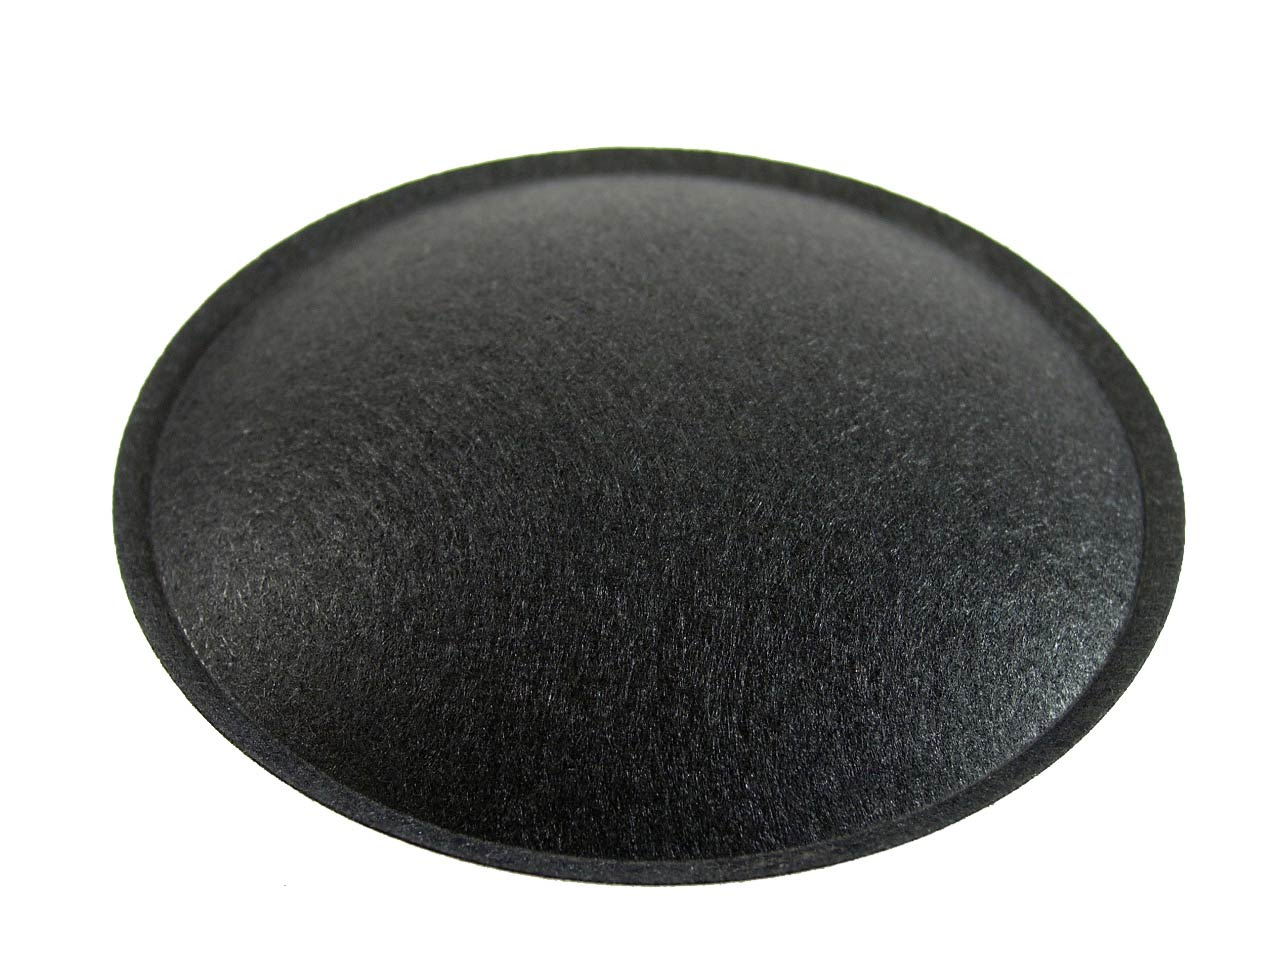 Speaker Dust Cap Black Felt